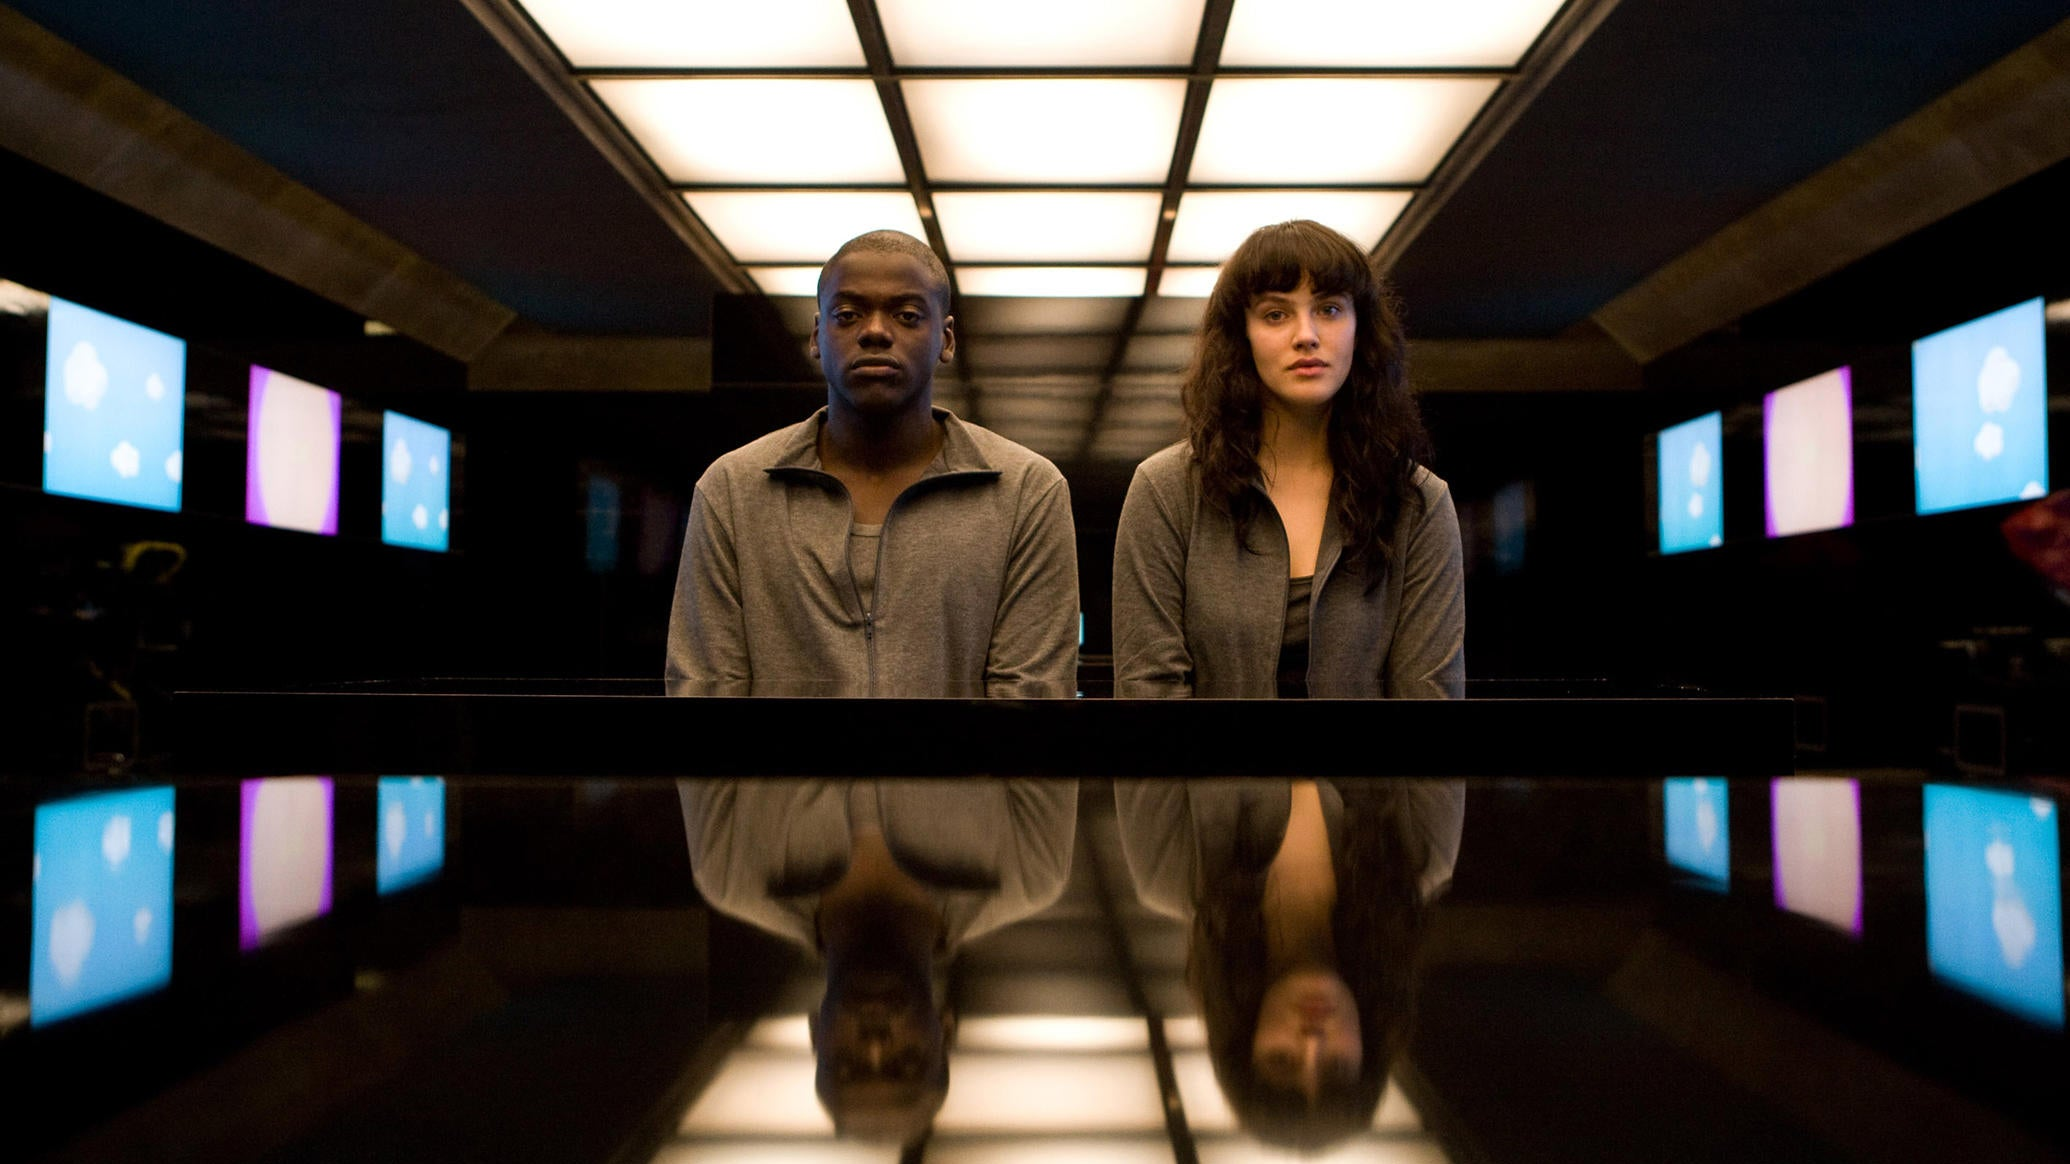 'This Is Some Black Mirror Shit' Is The Perfect Motto For 2017